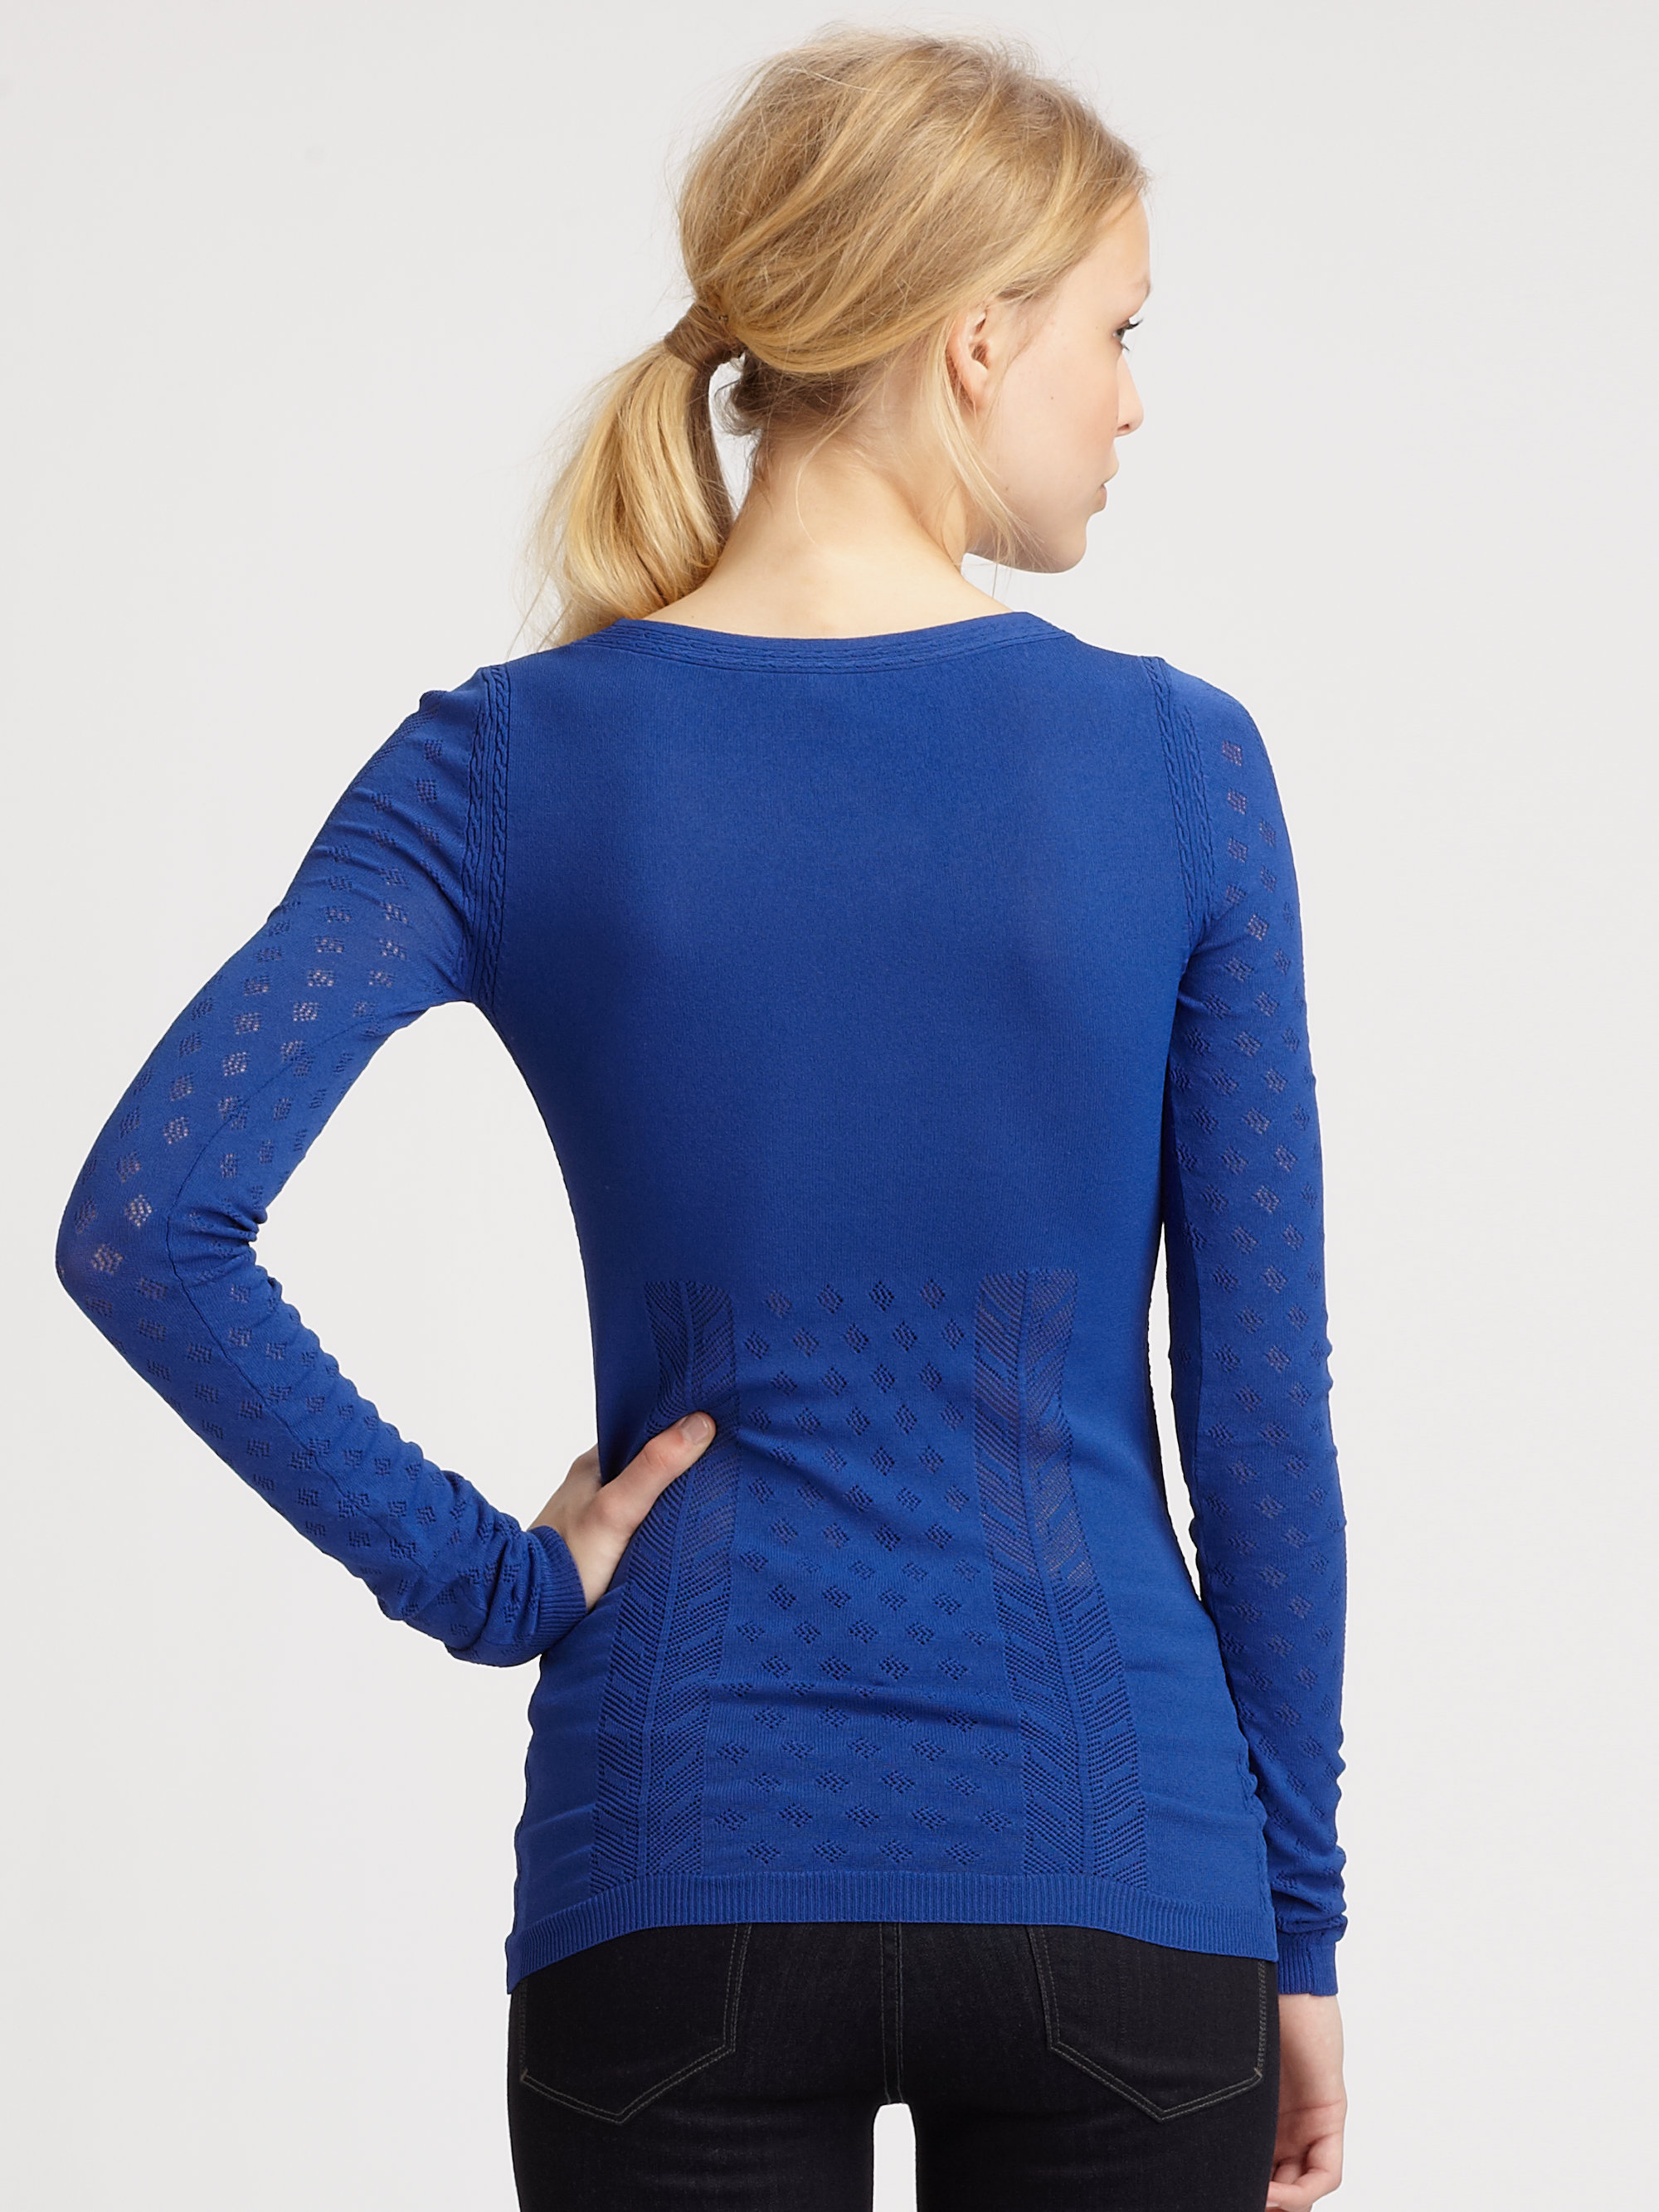 marc by marc jacobs retton pointelle sweater in blue lyst. Black Bedroom Furniture Sets. Home Design Ideas